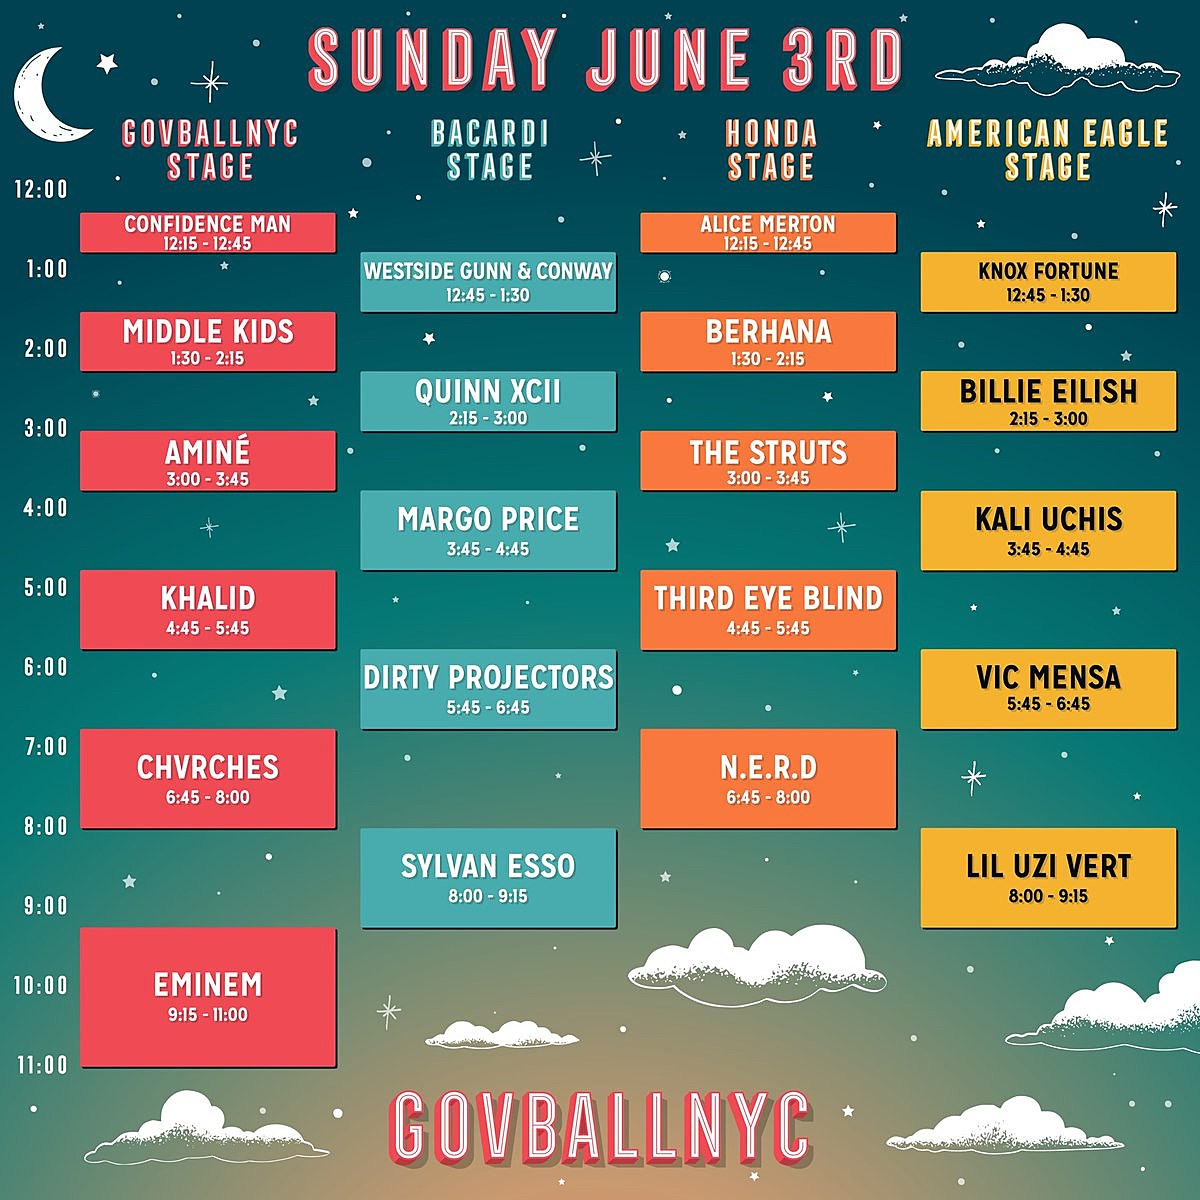 Governors Ball 2018 - Sunday Schedule